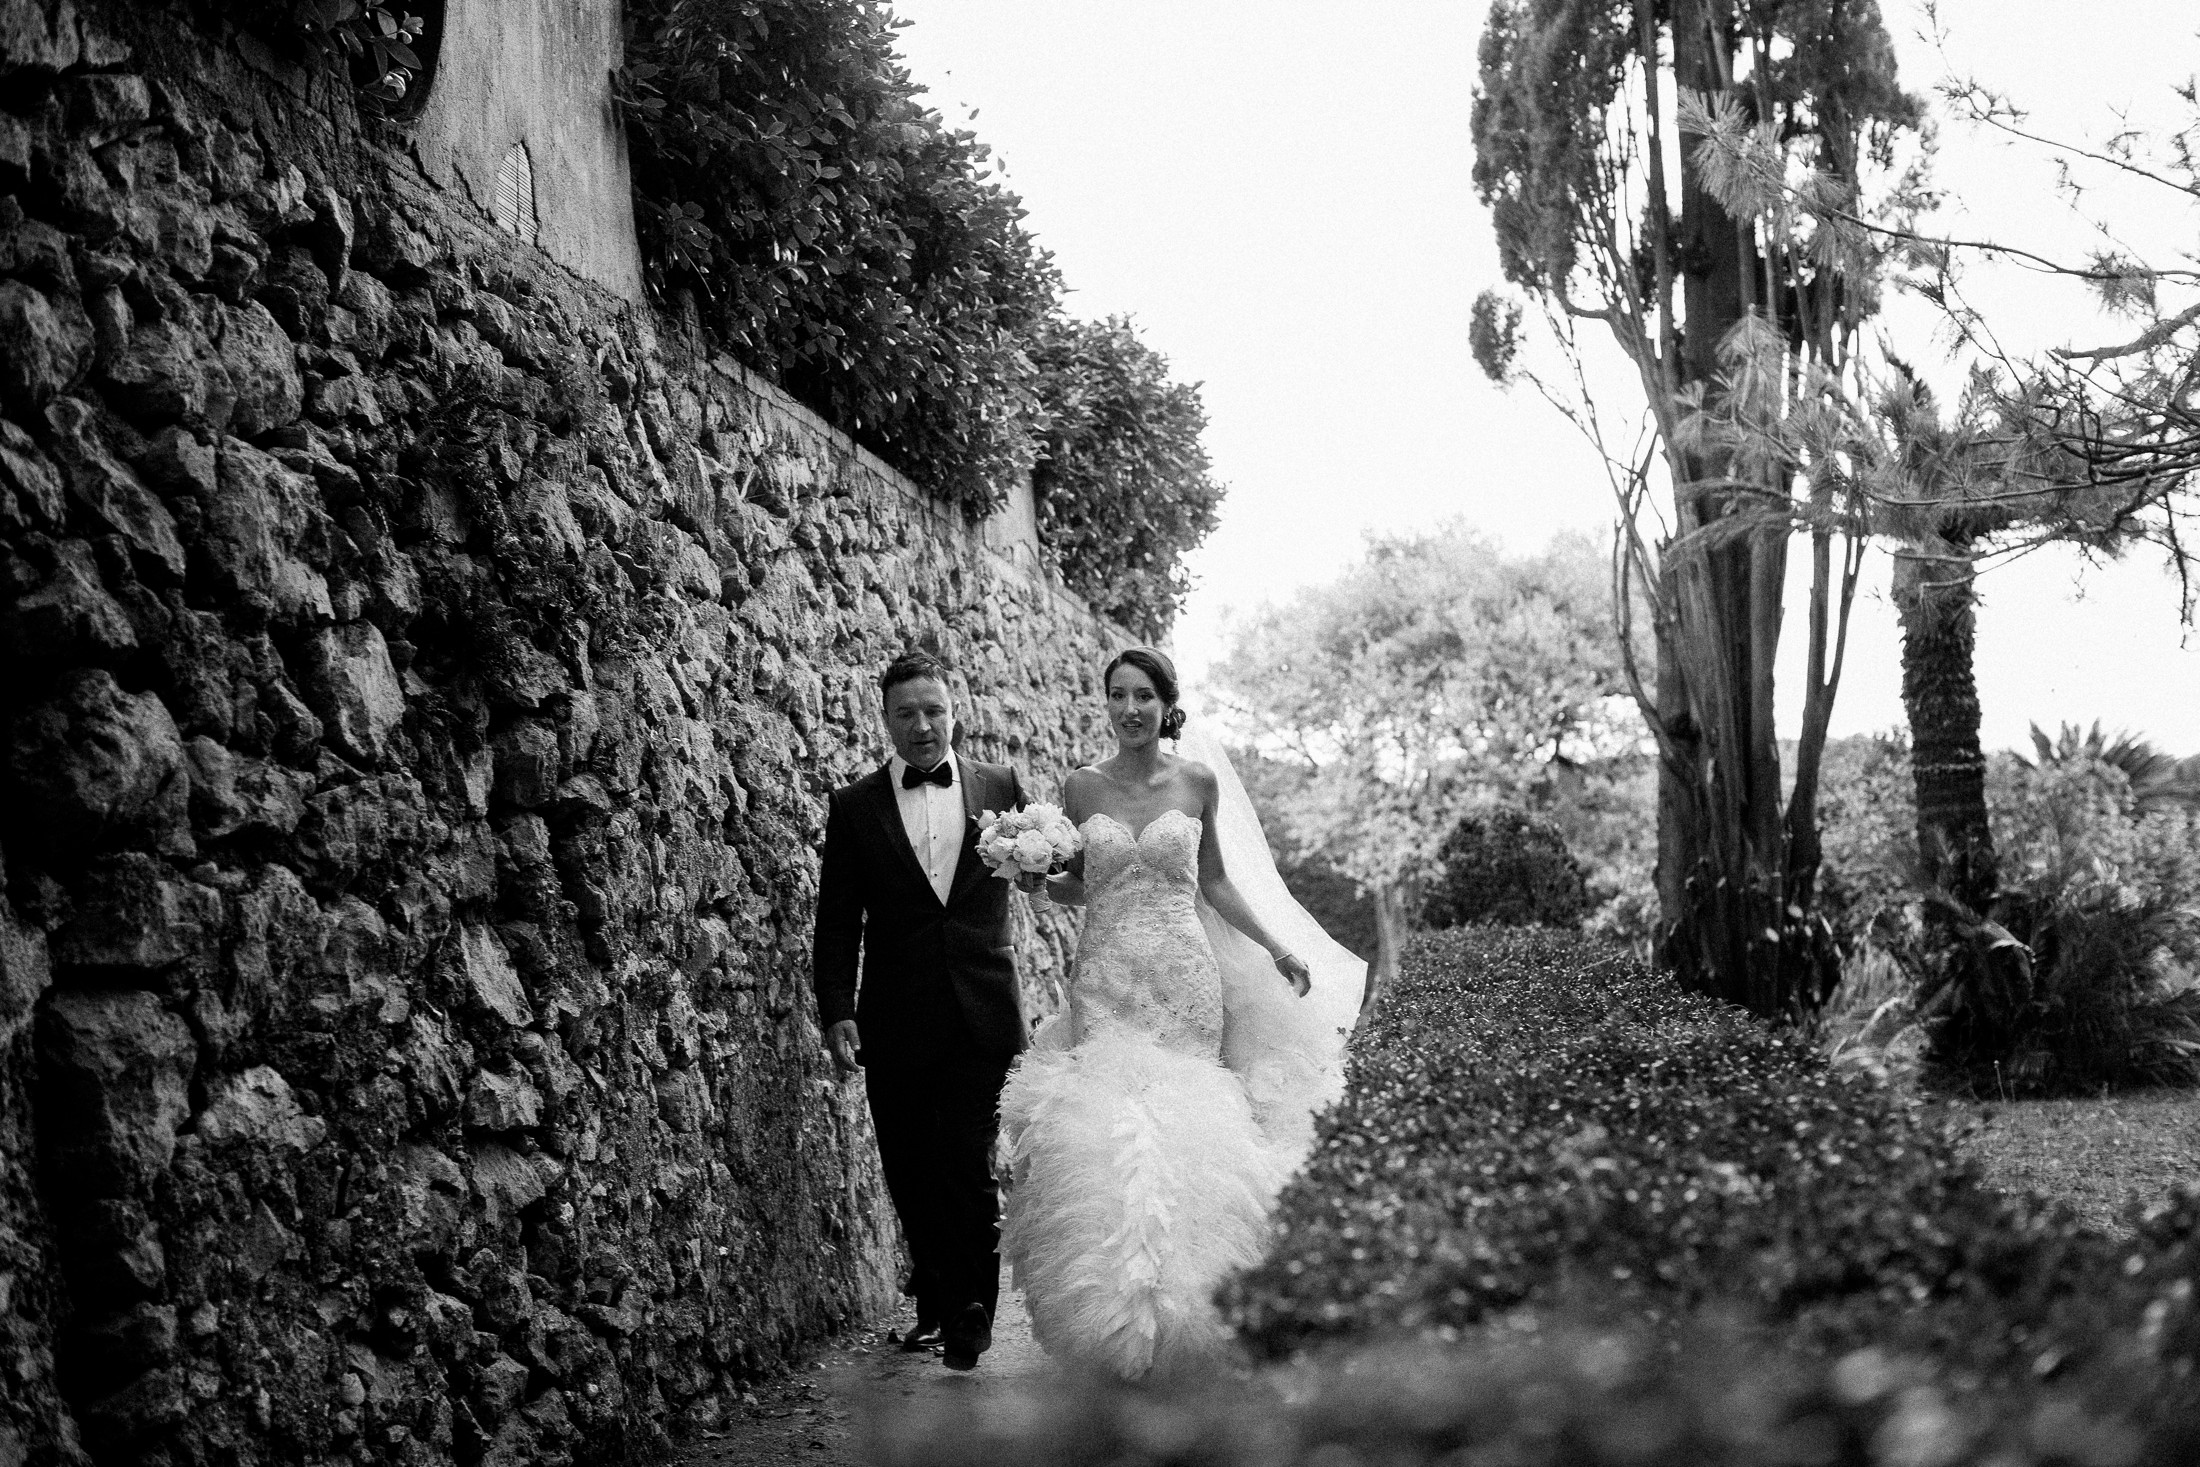 the bride walking with her groom